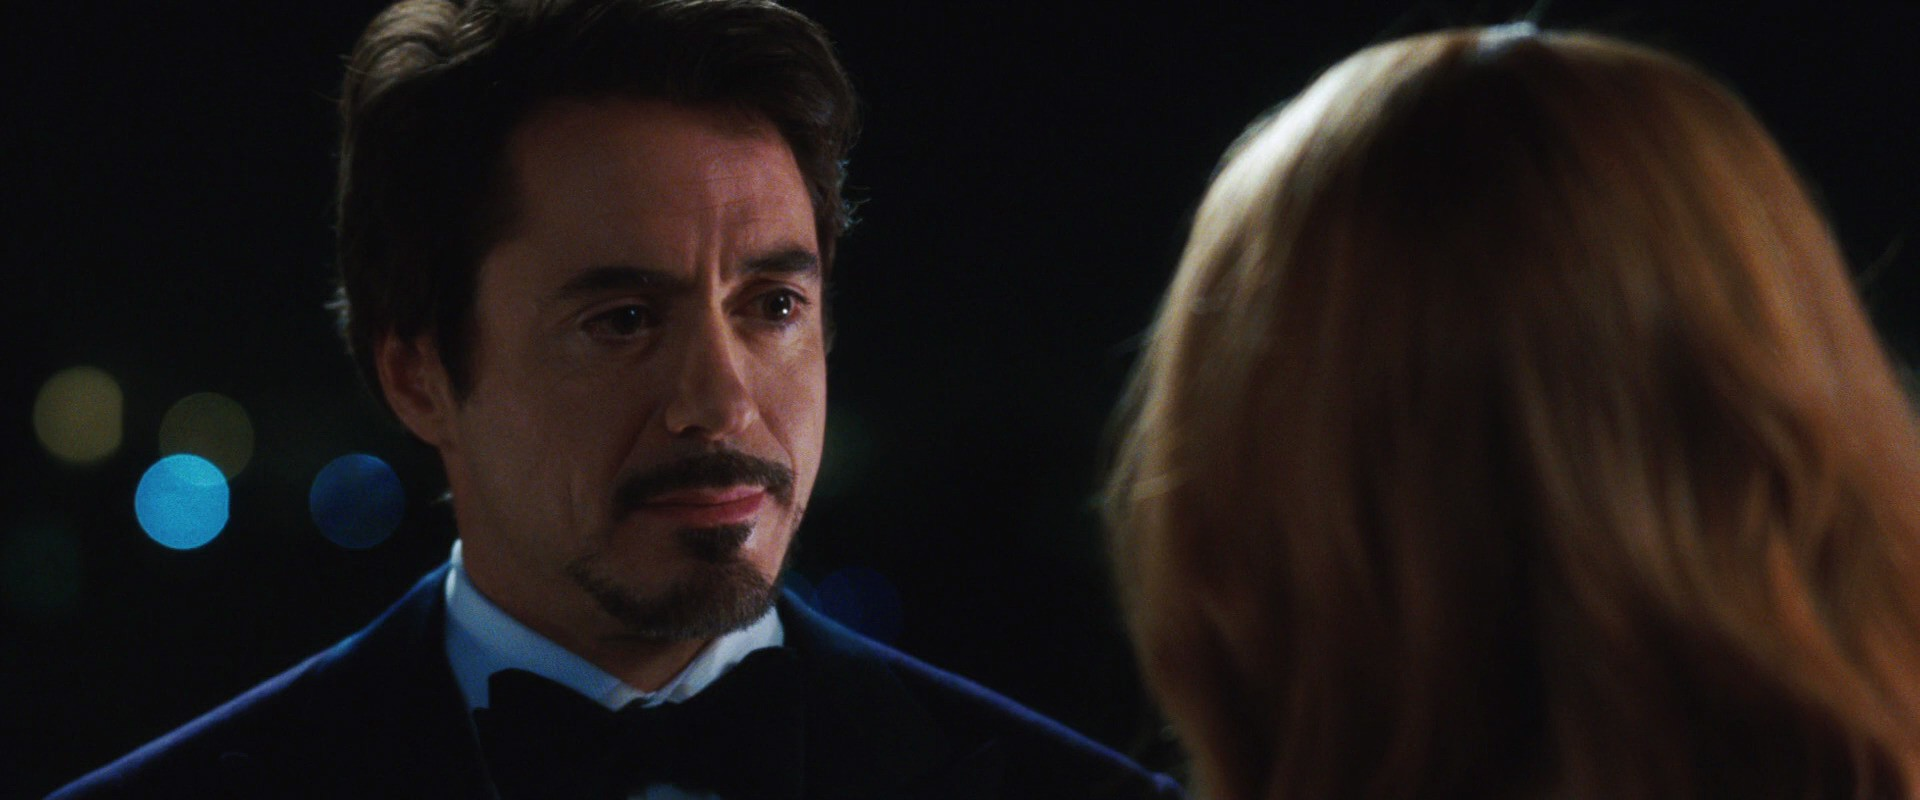 http://caps.pictures/200/8-iron-man1/full/iron-man1-movie-screencaps.com-8422.jpg